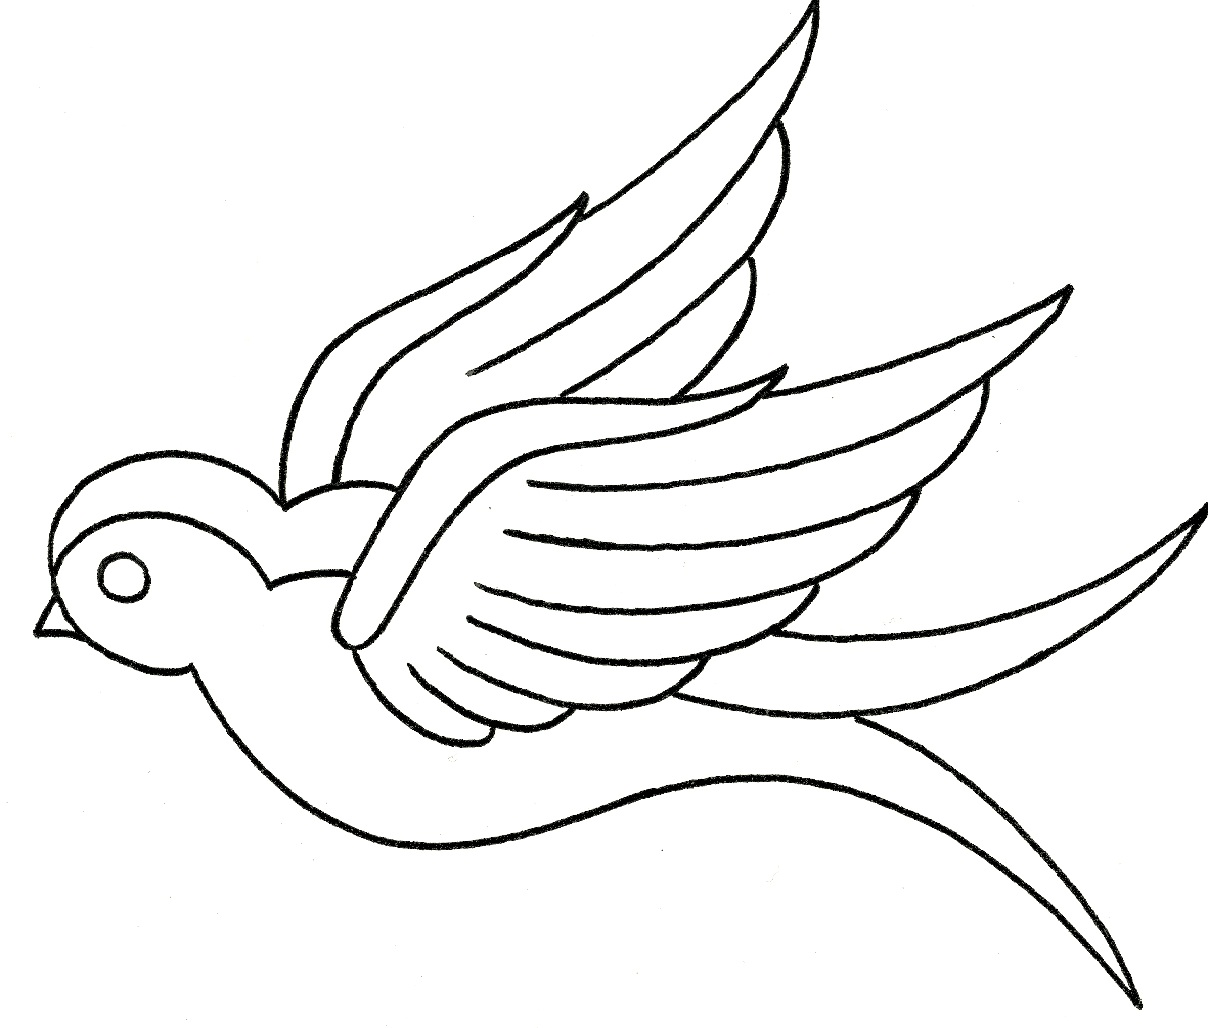 Sparrow Flying Drawing at GetDrawings.com | Free for ...